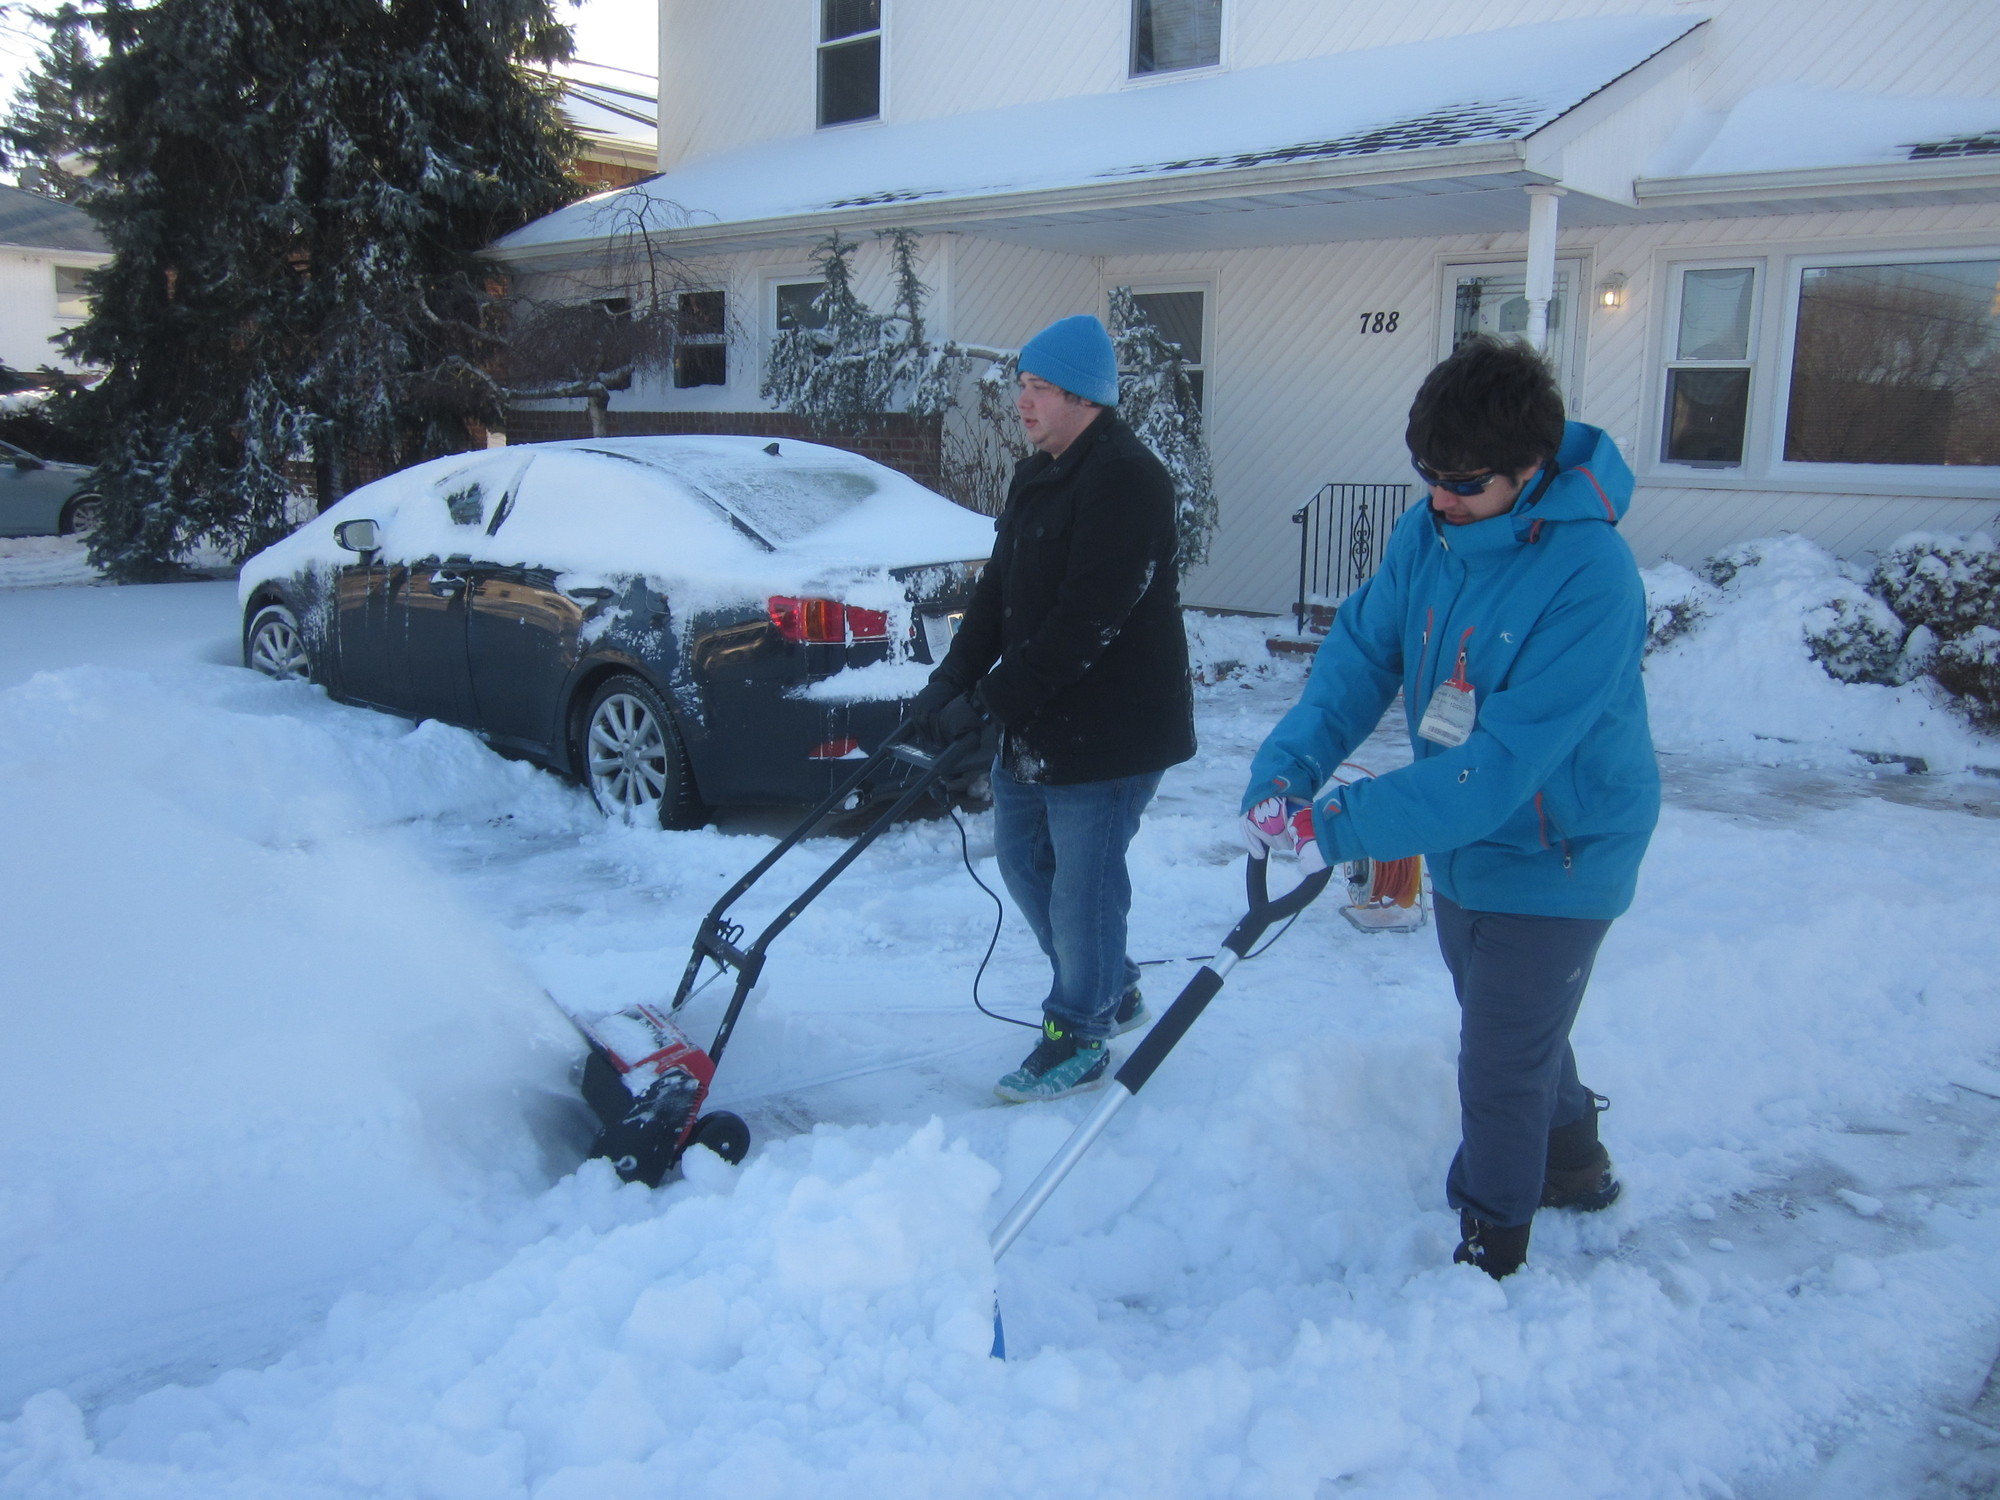 Brothers James and Paul Sarris shoveled their Merrick Avenue home.